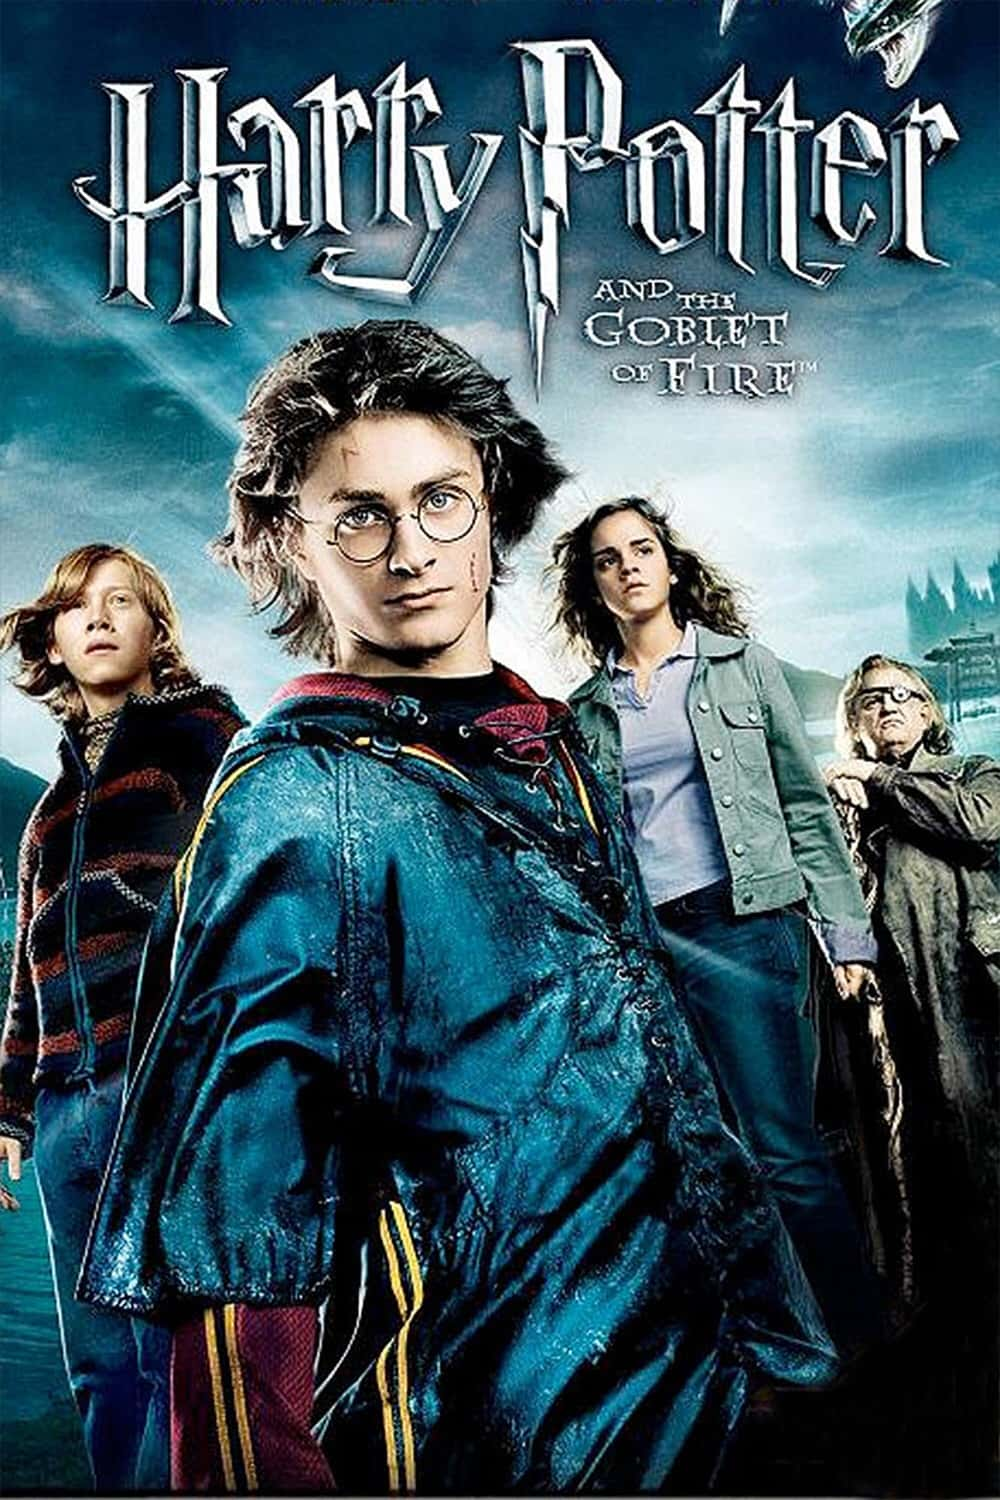 Goblet_of_Fire_Film_Poster.jpg